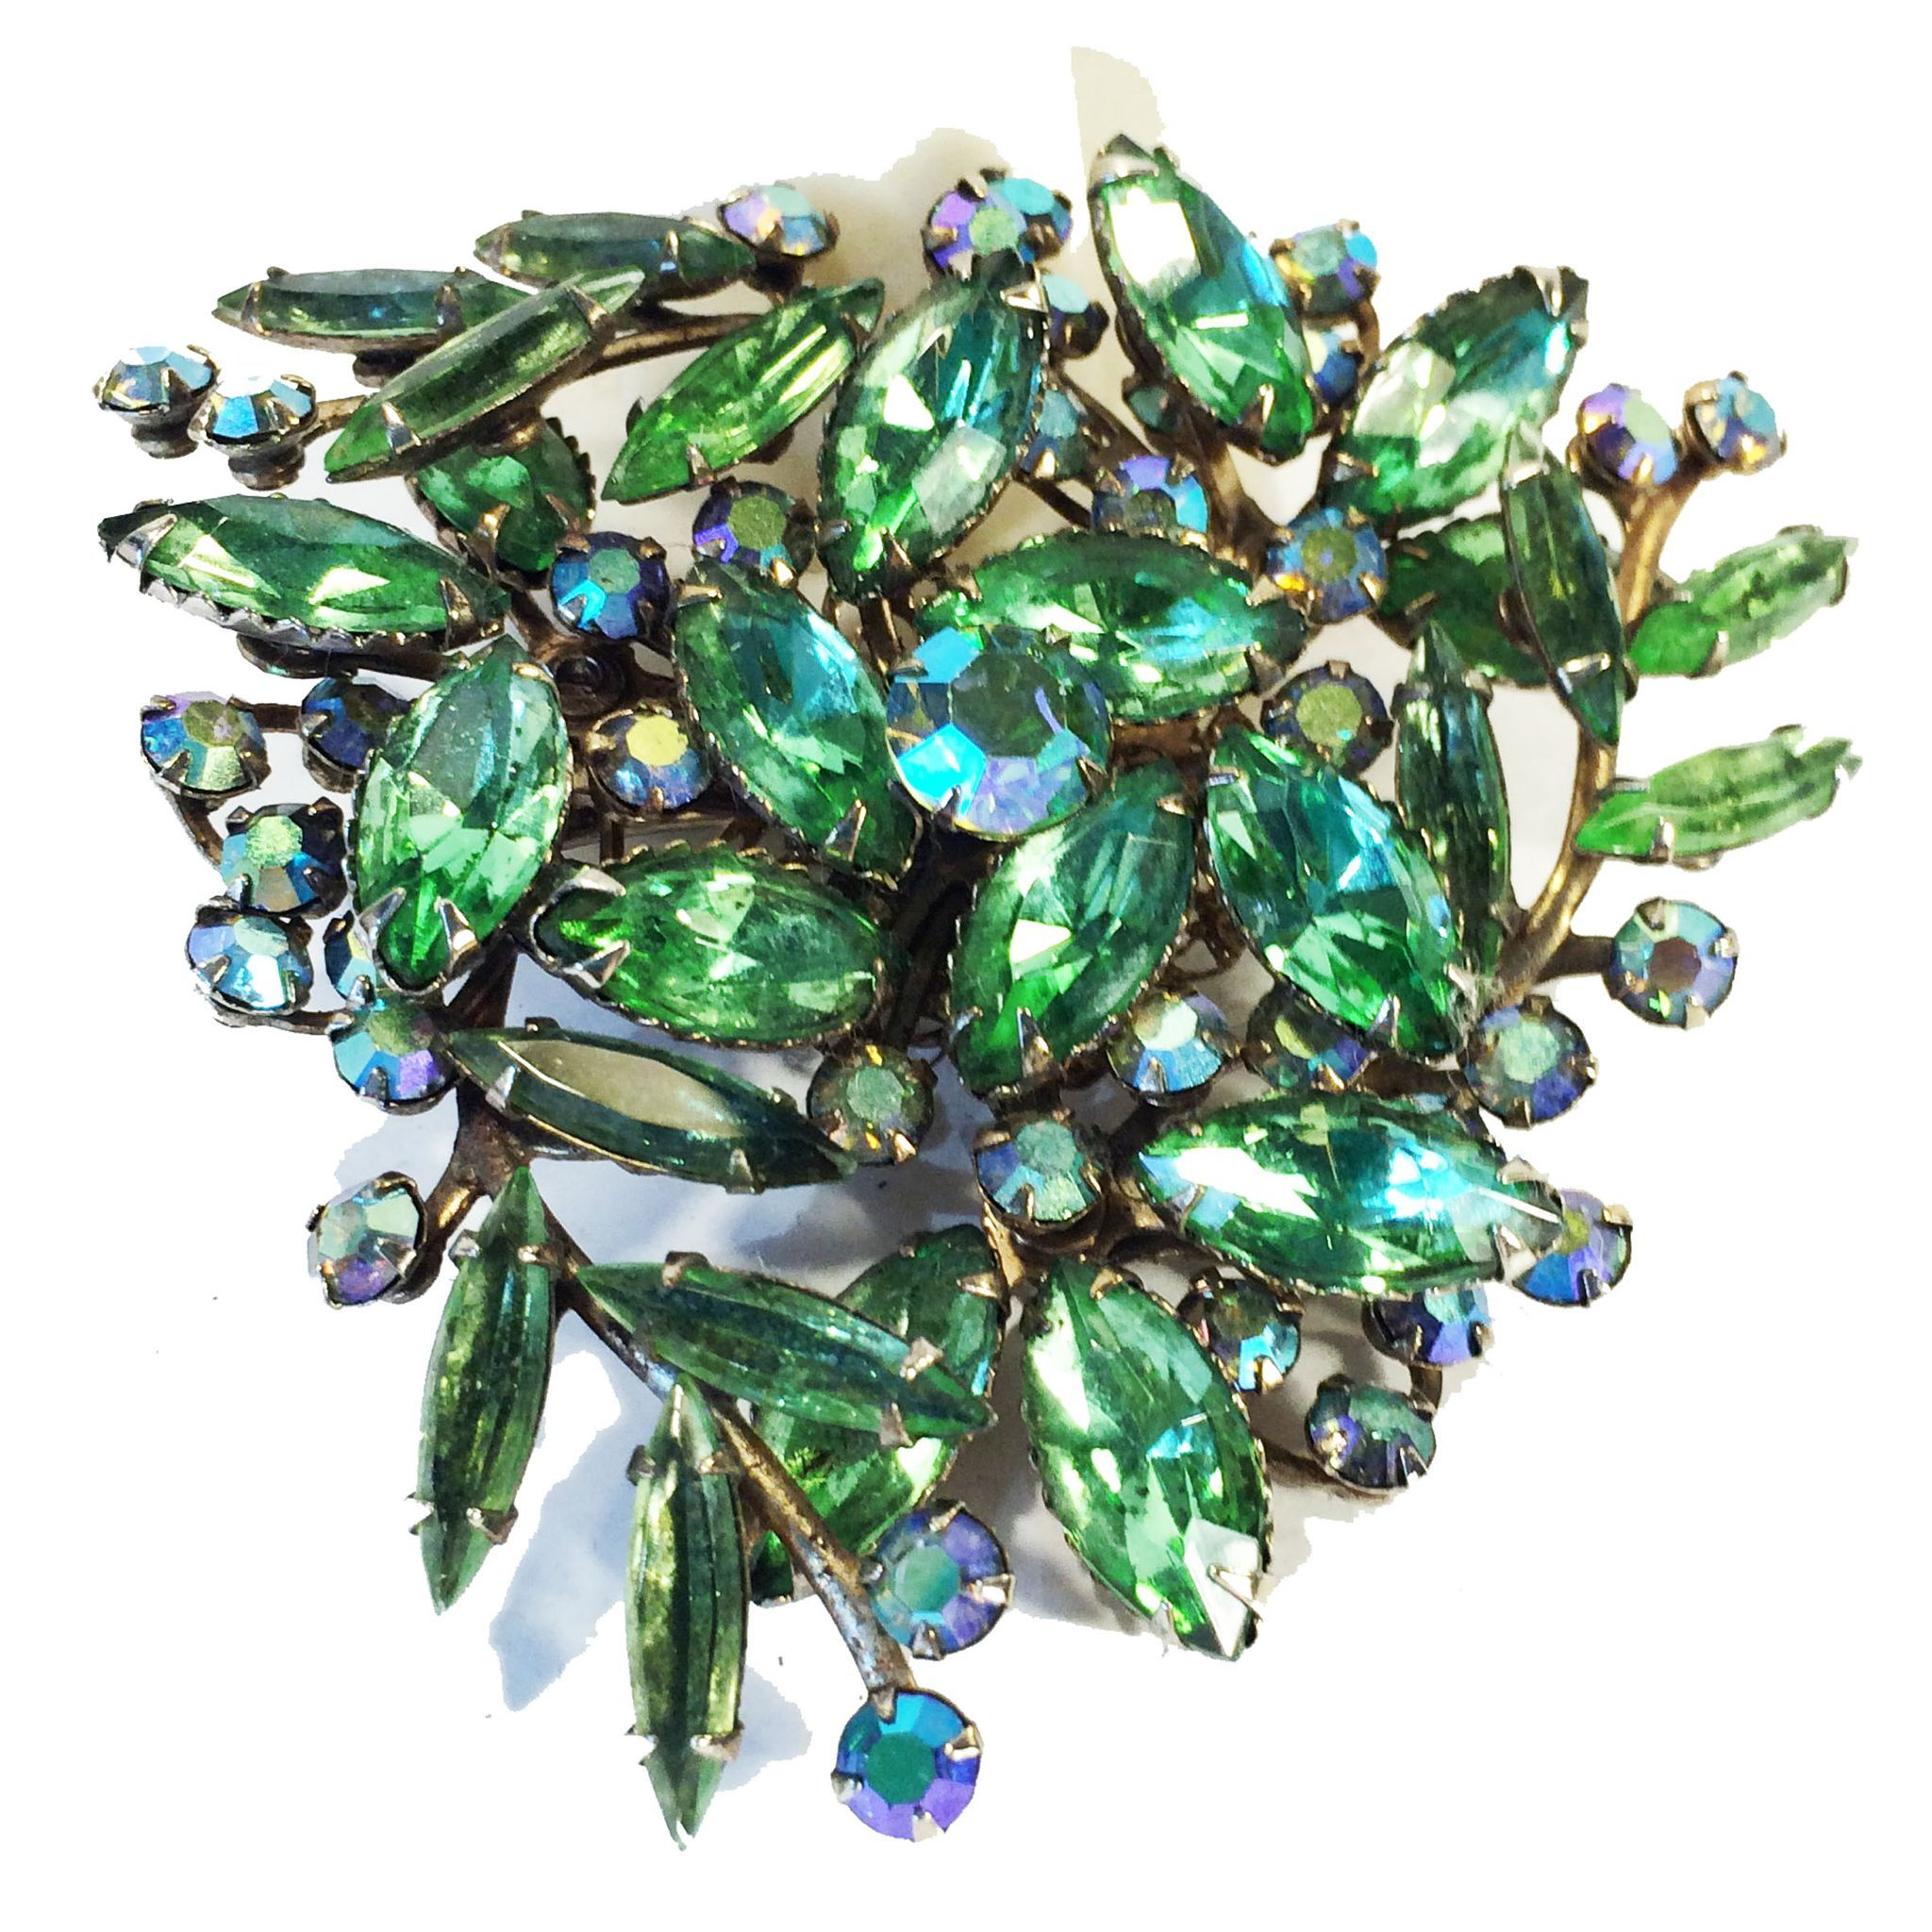 Peridot Color Rhinestone Thin and Thick Navettes with Aurora Borealis Accents Swedged Spray Floral Brooch